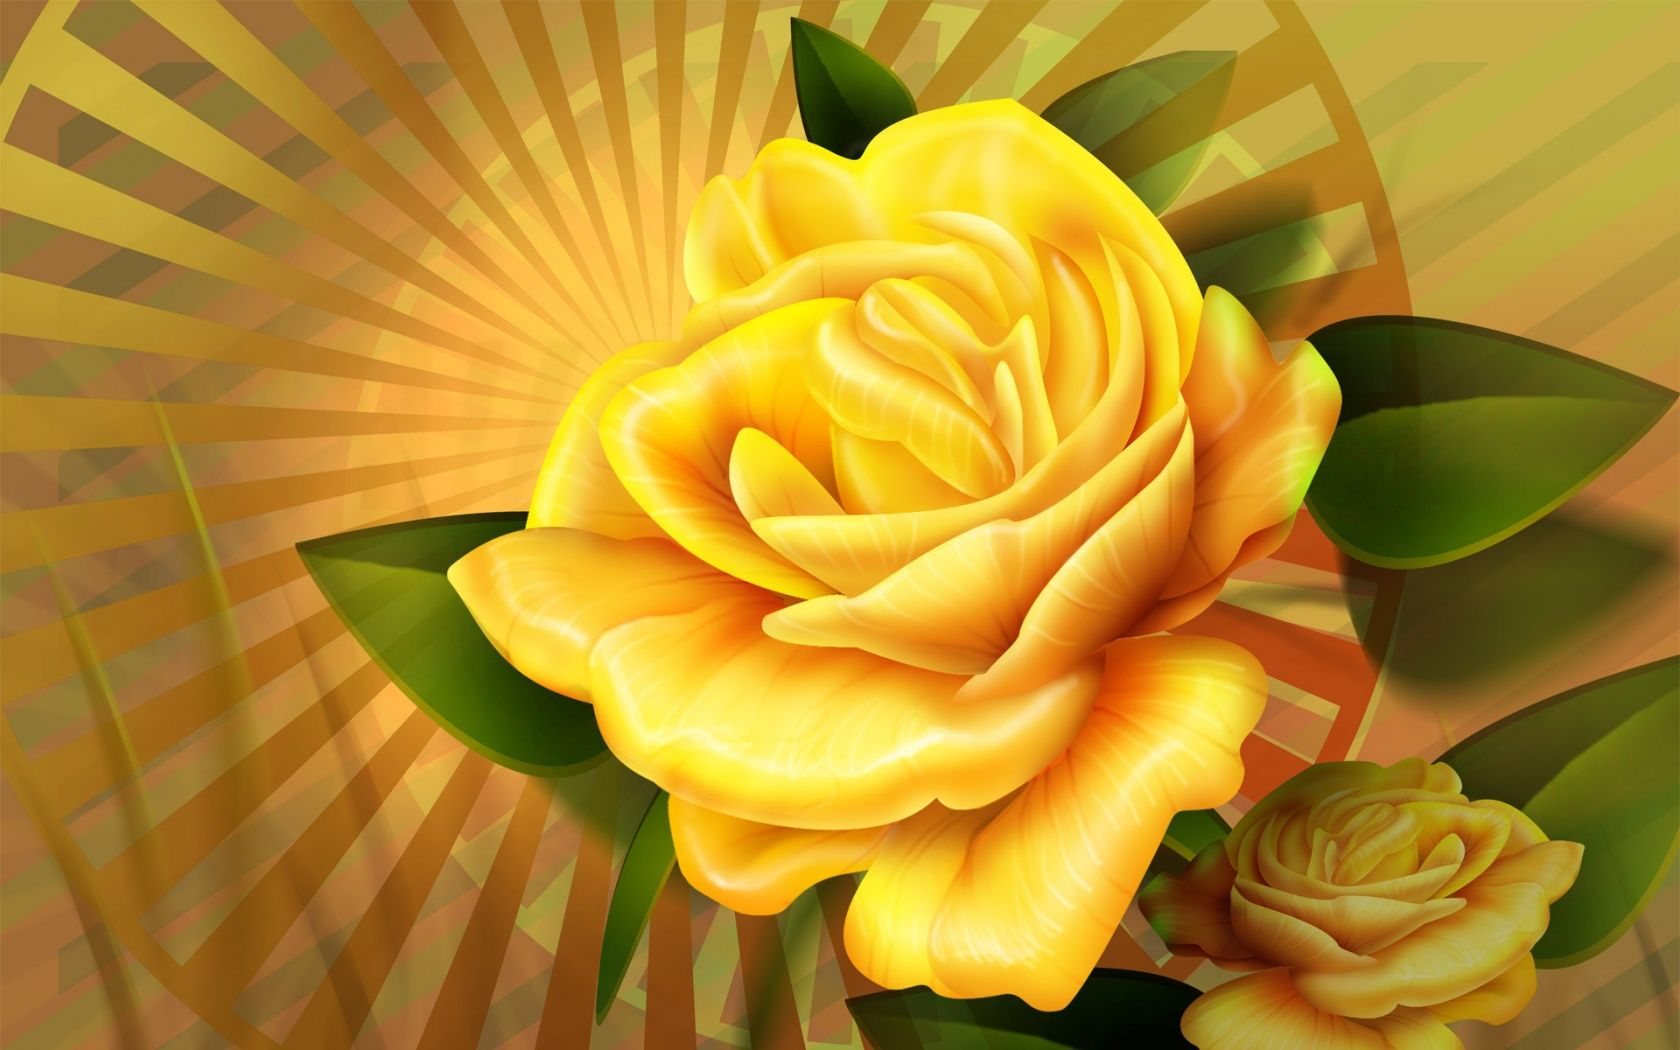 Yellow flowers pictures flowers wallpapers hd wallpapers yellow flowers pictures flowers wallpapers hd wallpapers widescreen yellow rose wide dhlflorist Image collections